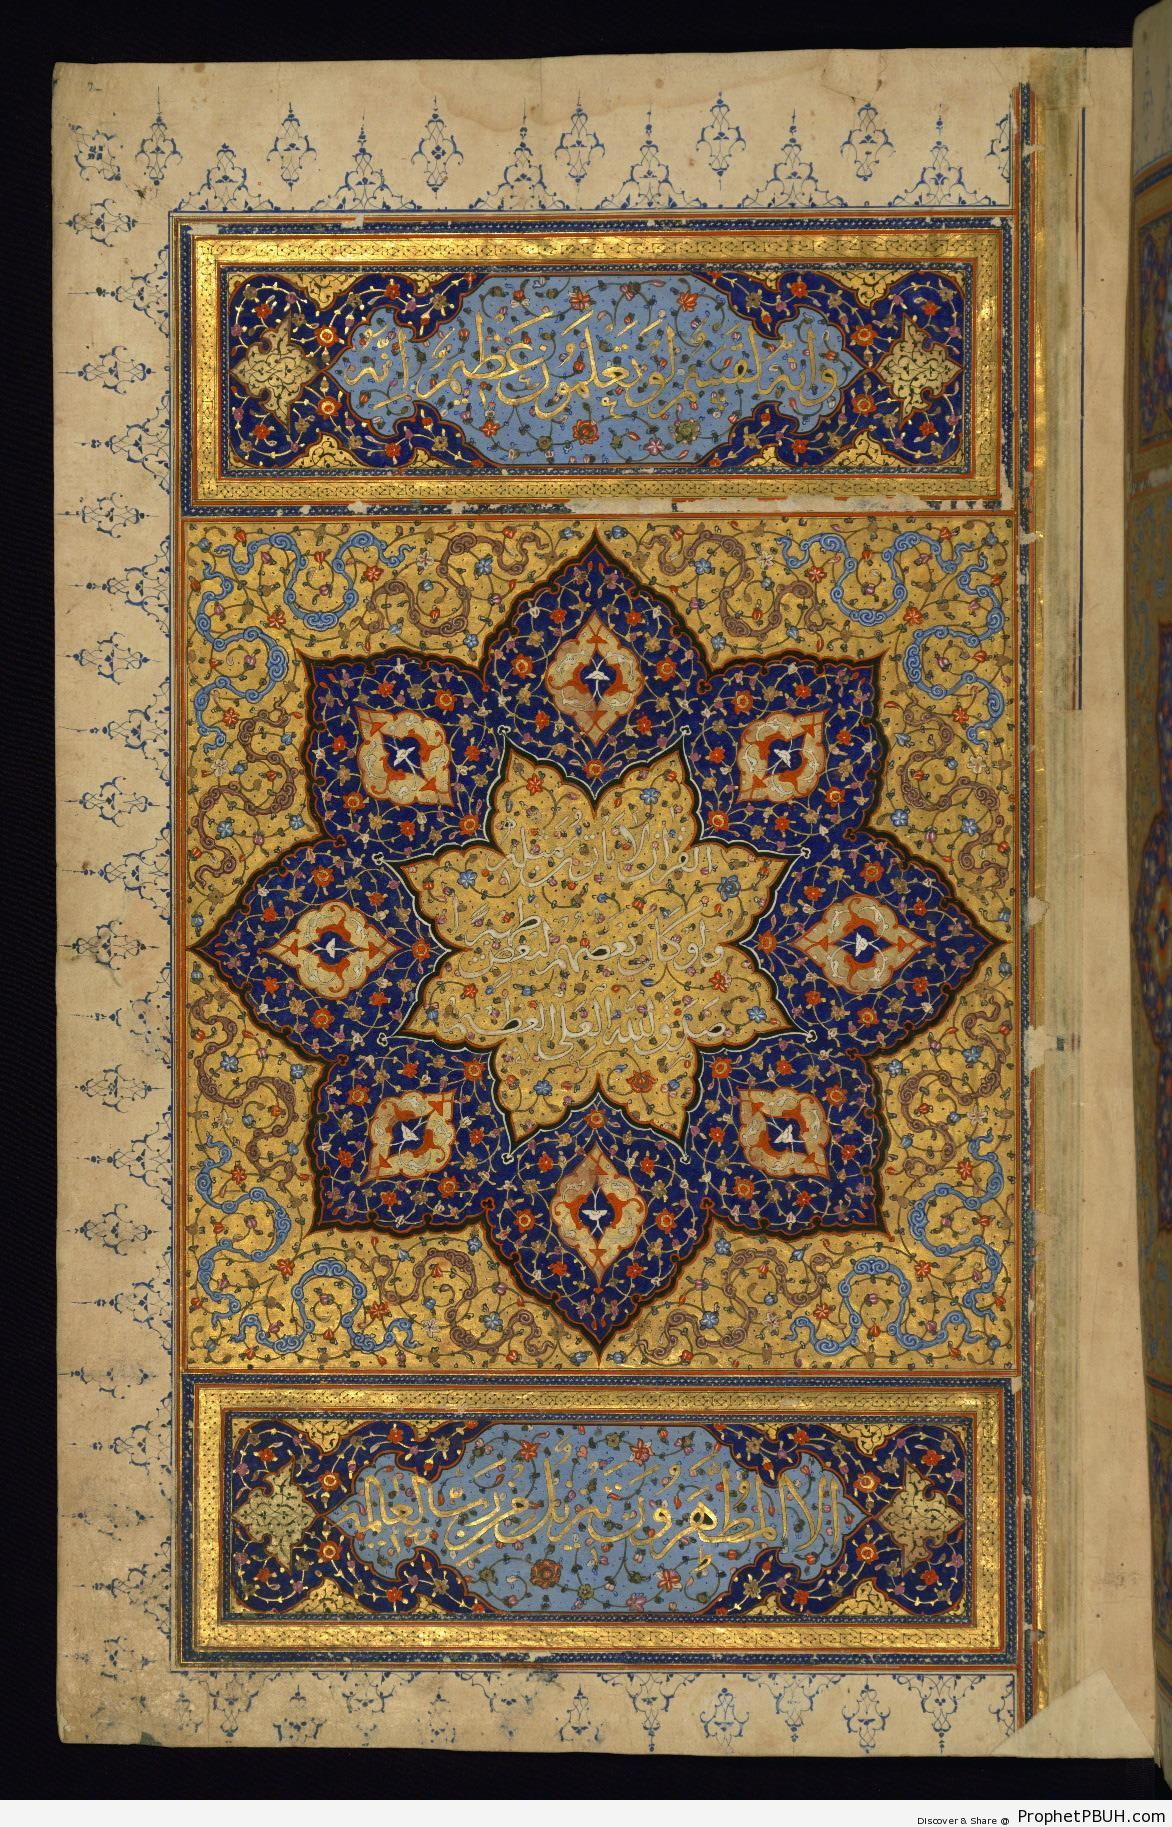 11th Century Illuminated Quran Manuscript Frontispiece (left side) - Islamic Calligraphy and Typography